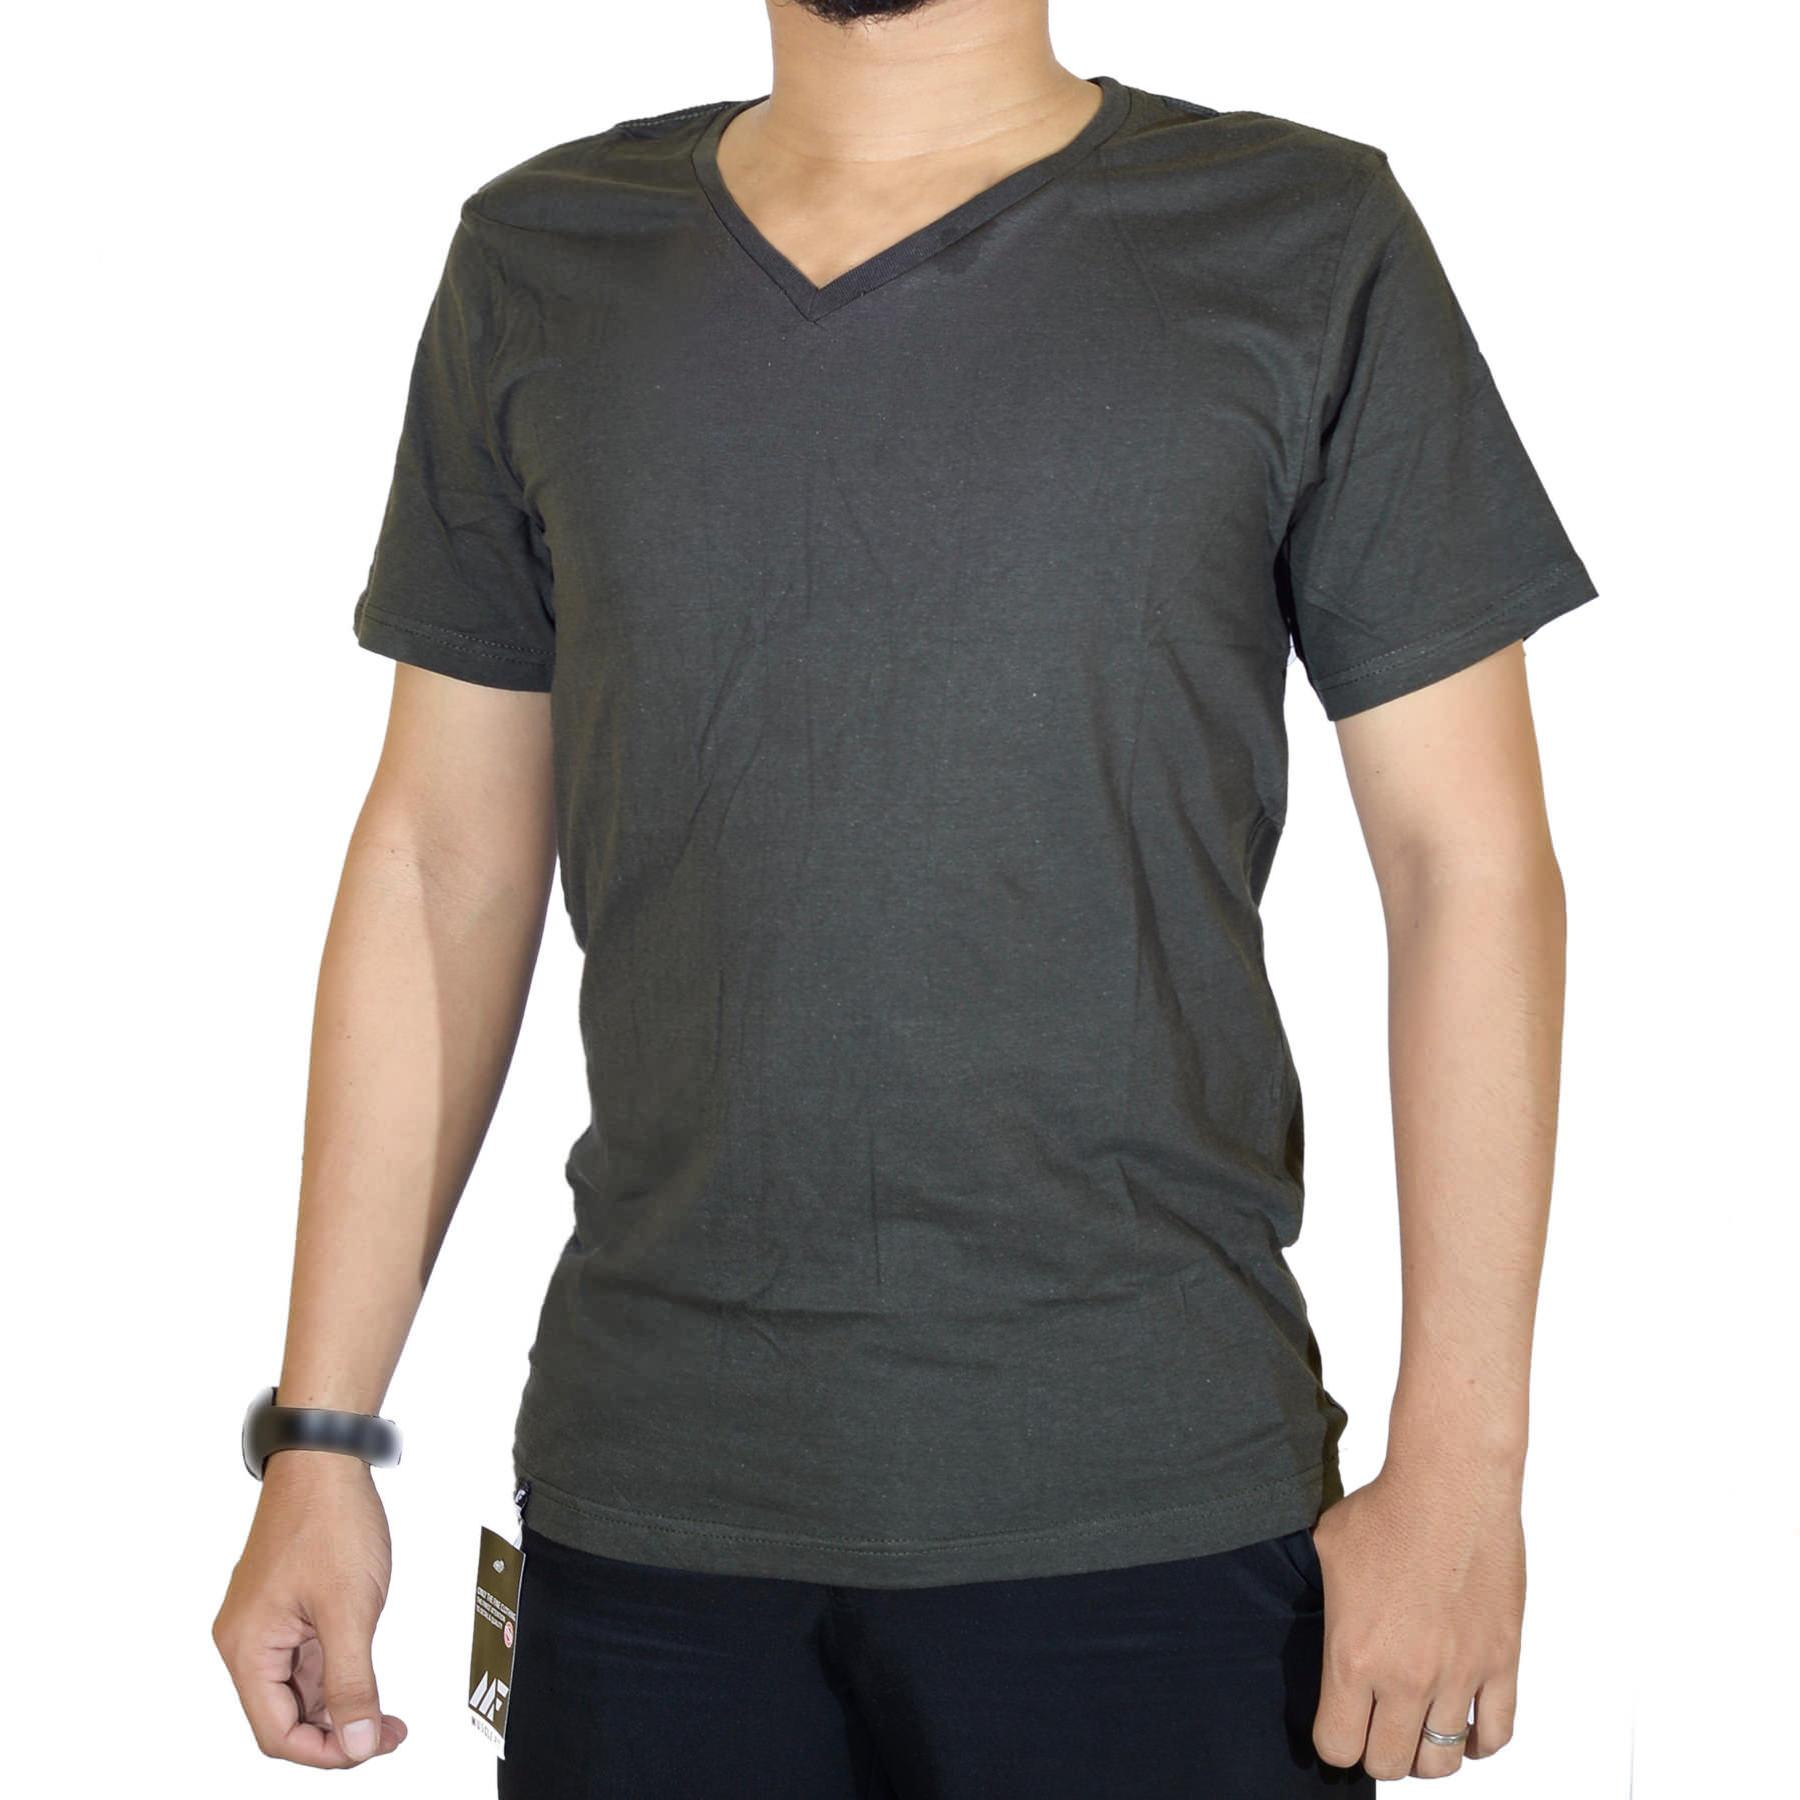 Muscle Fit Kaos Polos T-shirt V-neck Lengan pendek Cotton -DVT.0013-OLIVE